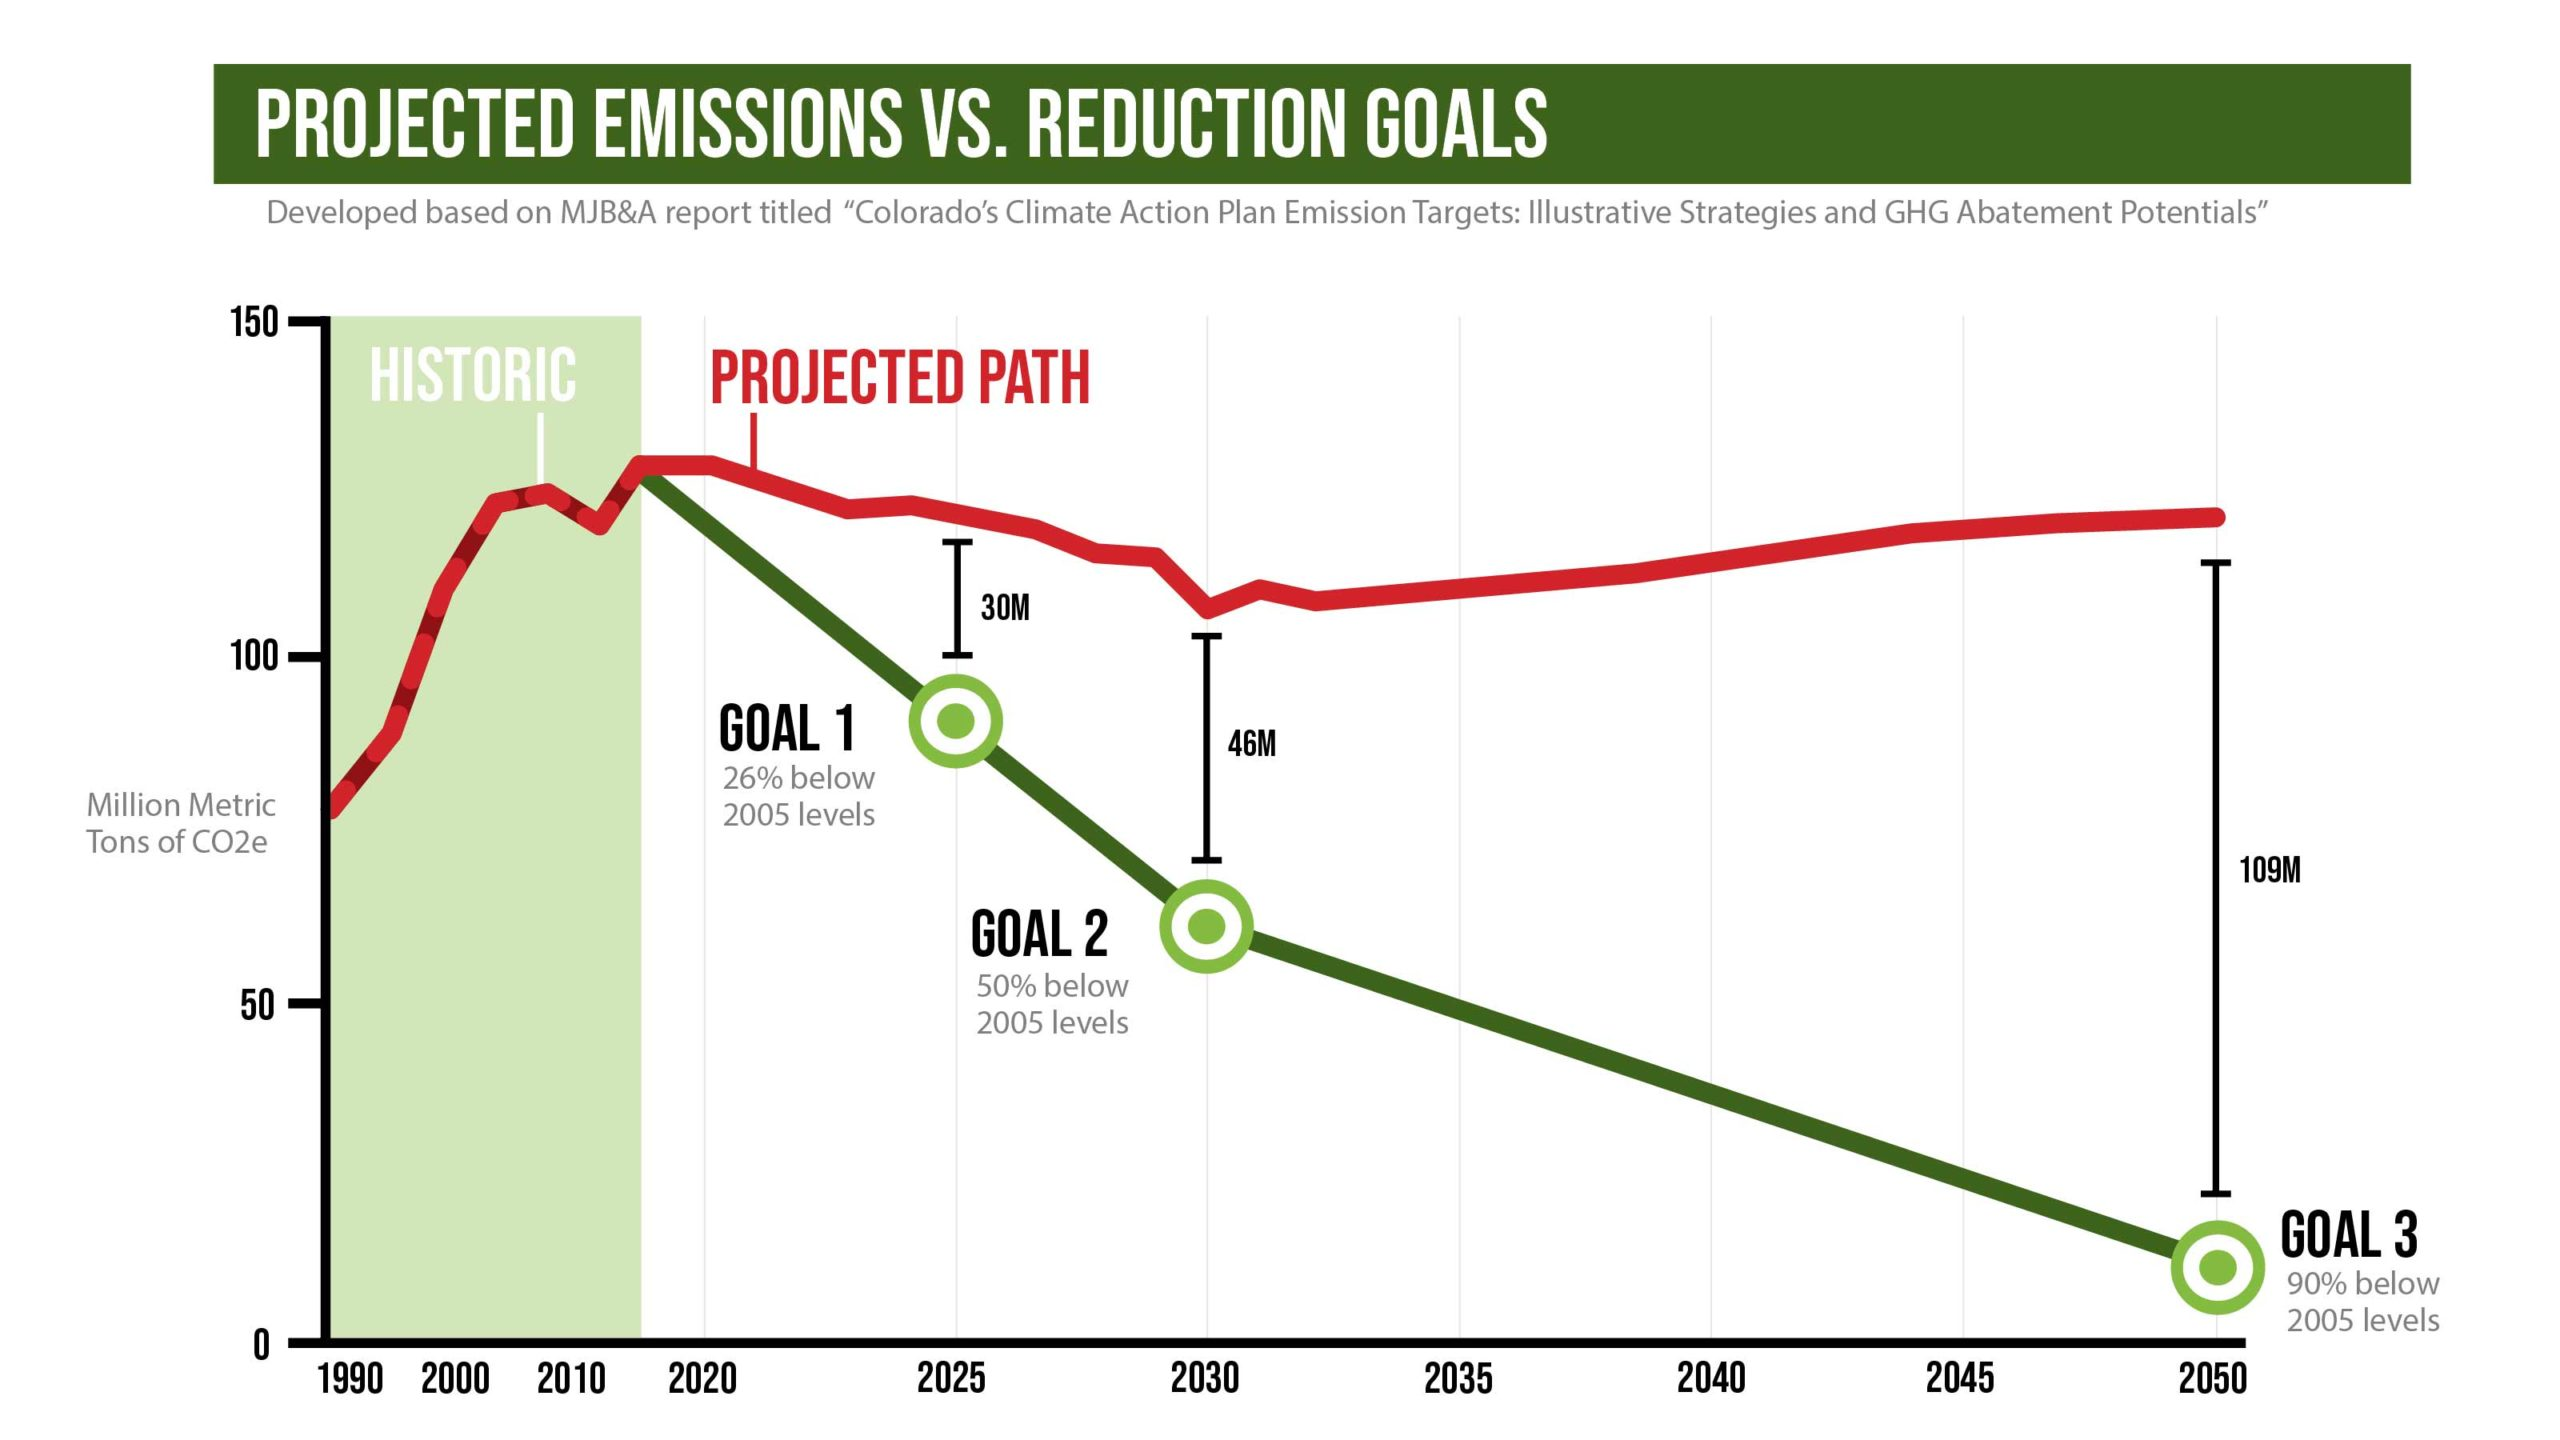 colorado climate reduction goals